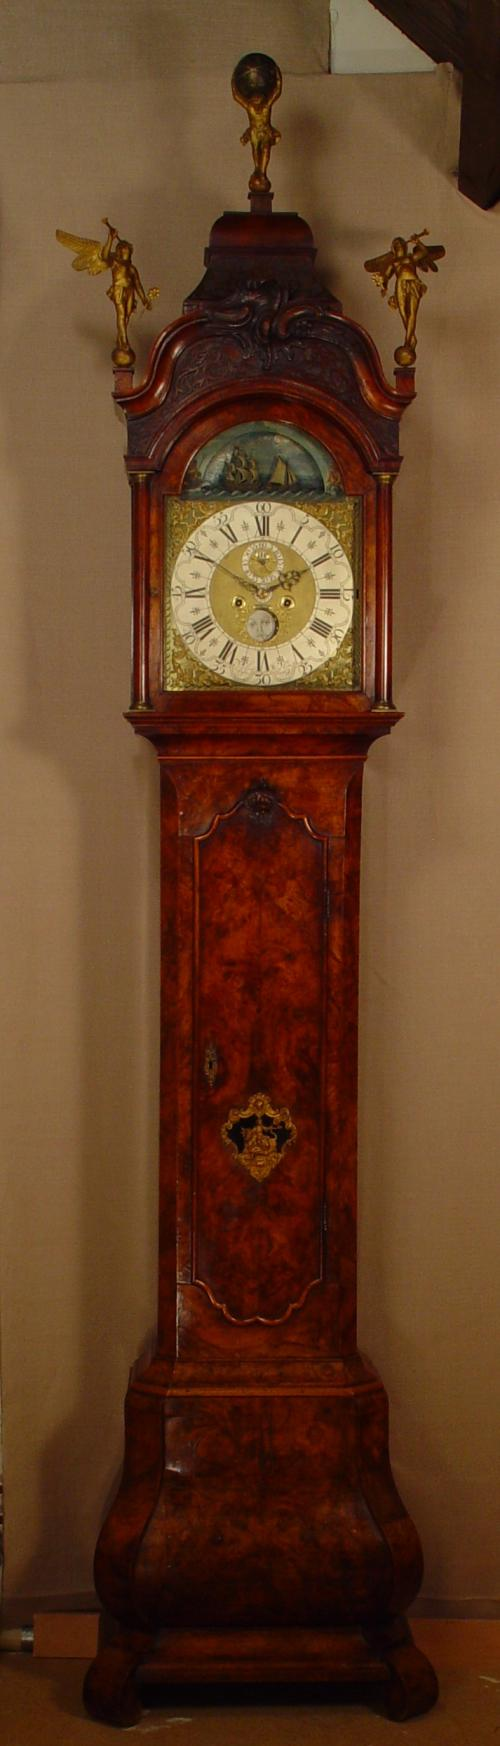 A Dutch Amsterdam burr walnut longcase clock with ships automaton N. Weylandt circa 1750